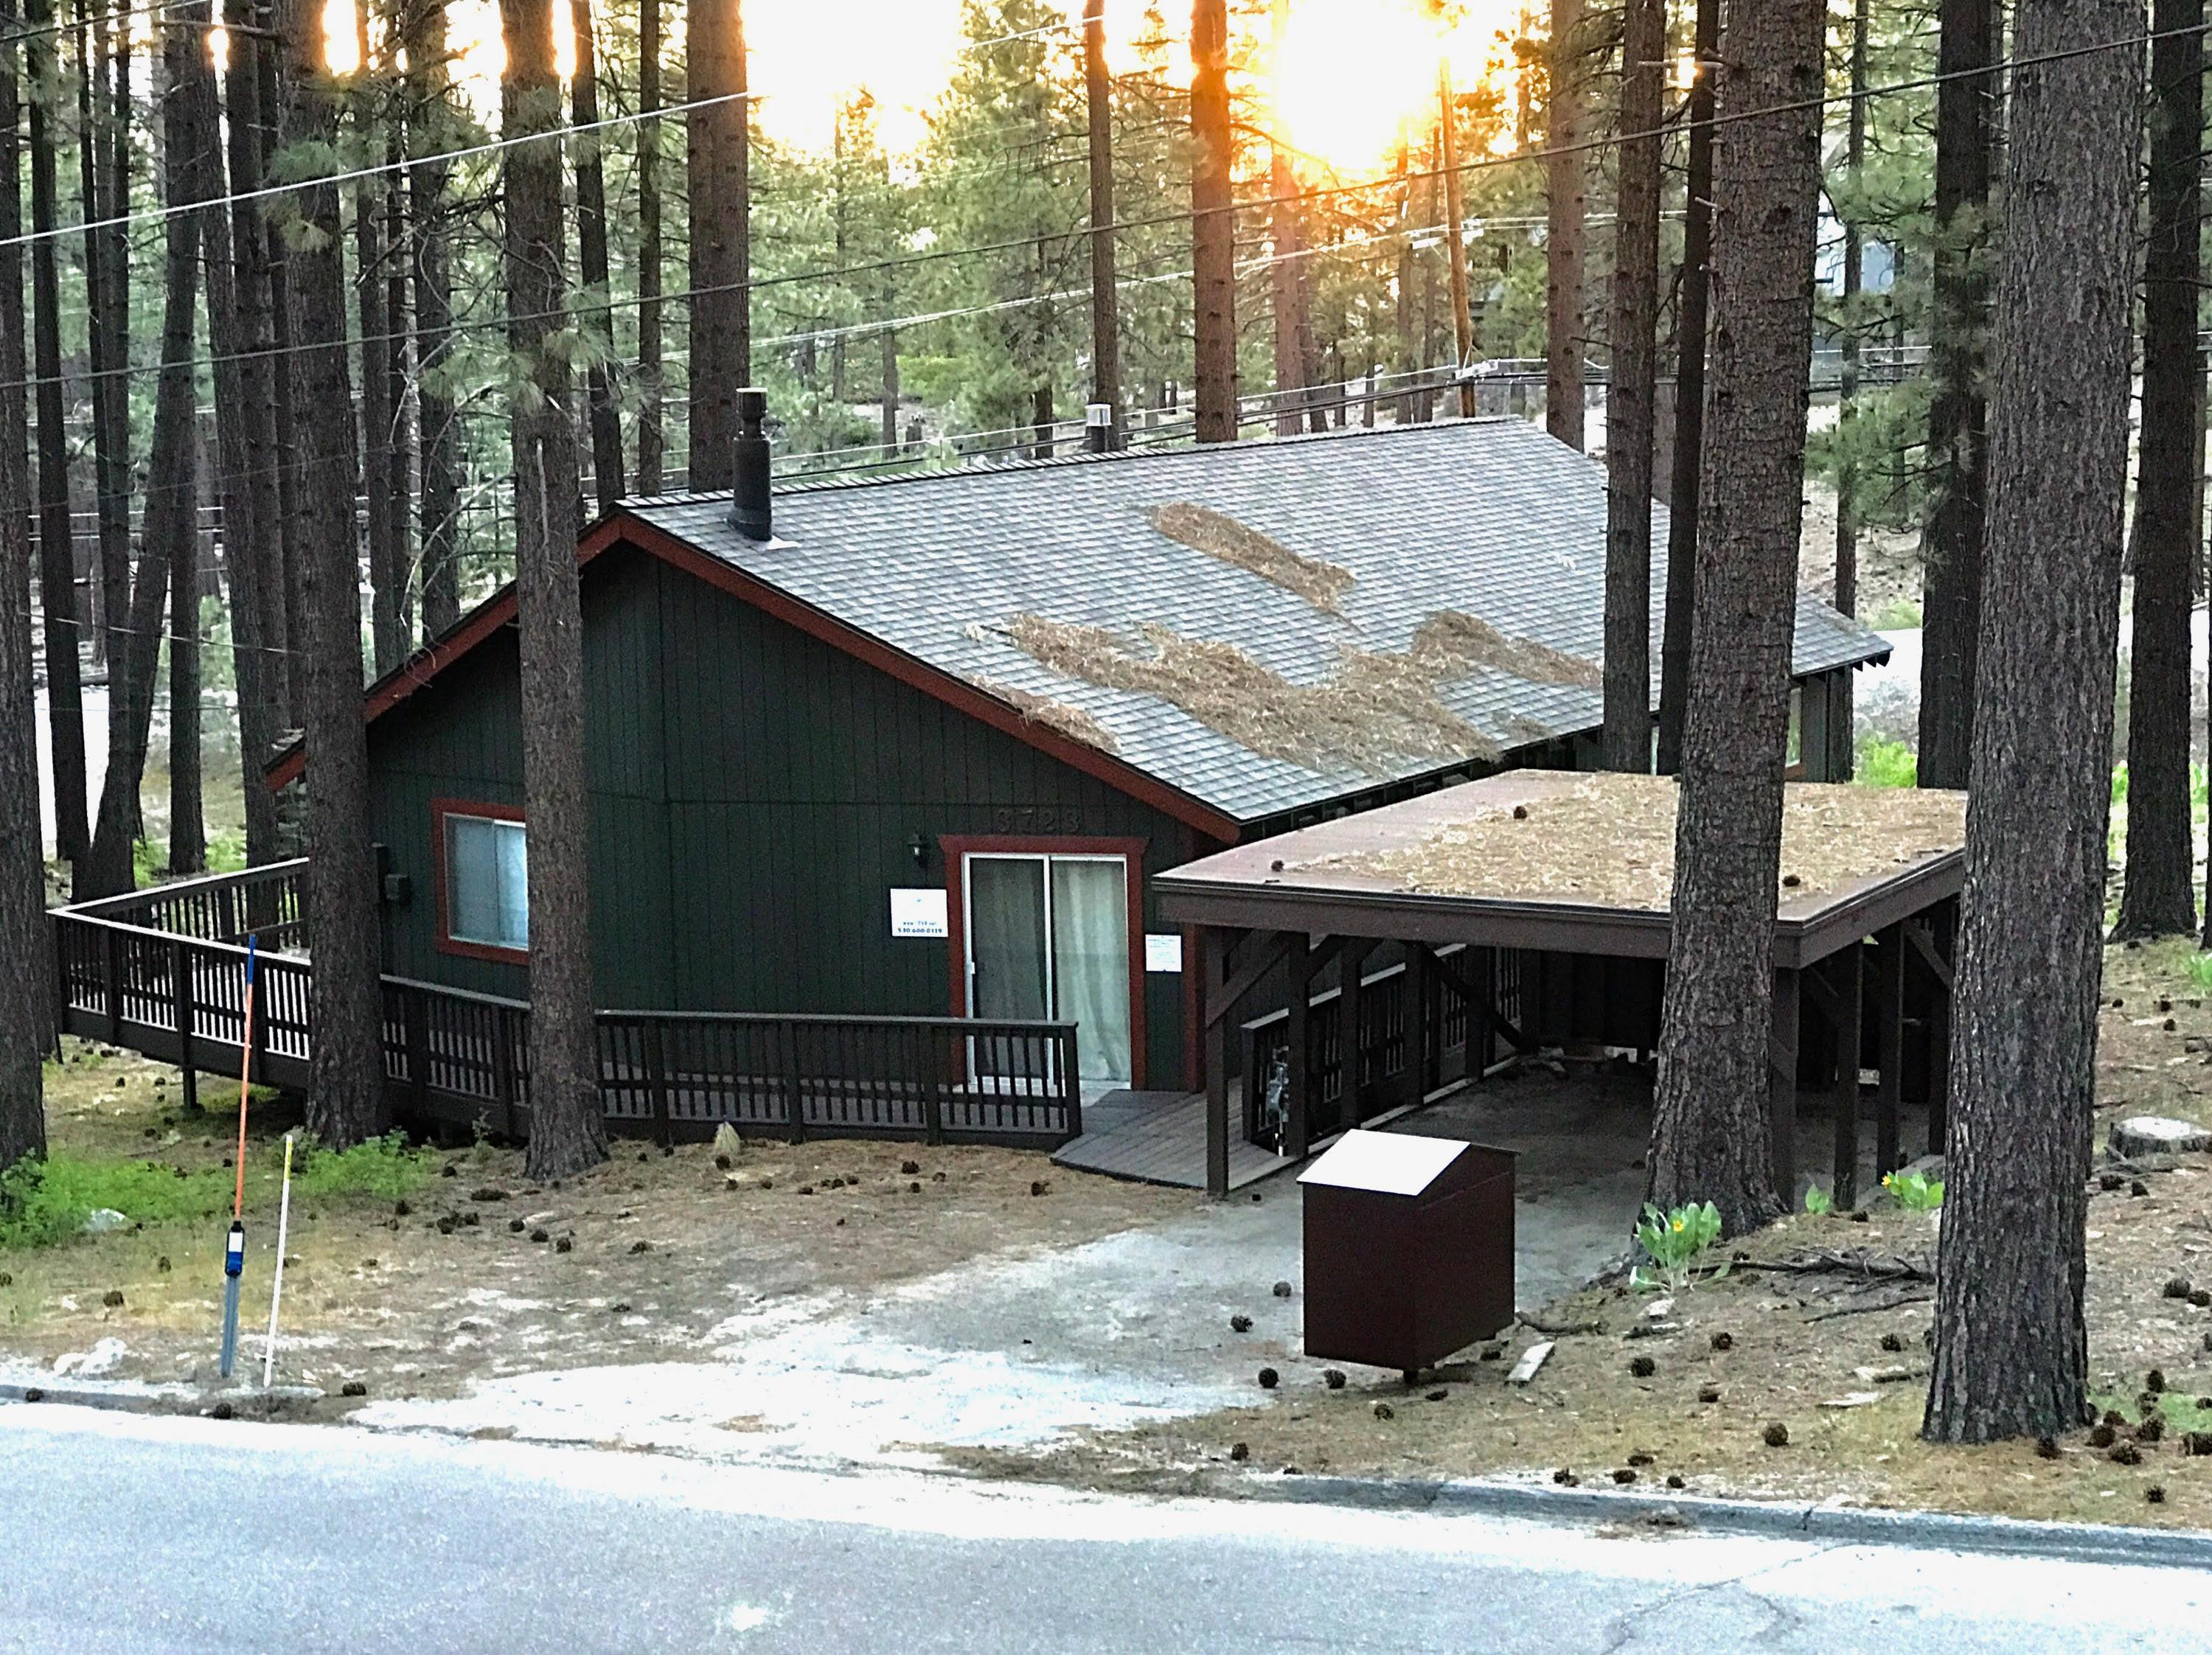 rental sprawling tahoe cabin rentals ca valley property cabins redawning vacation lake private south heavenly in